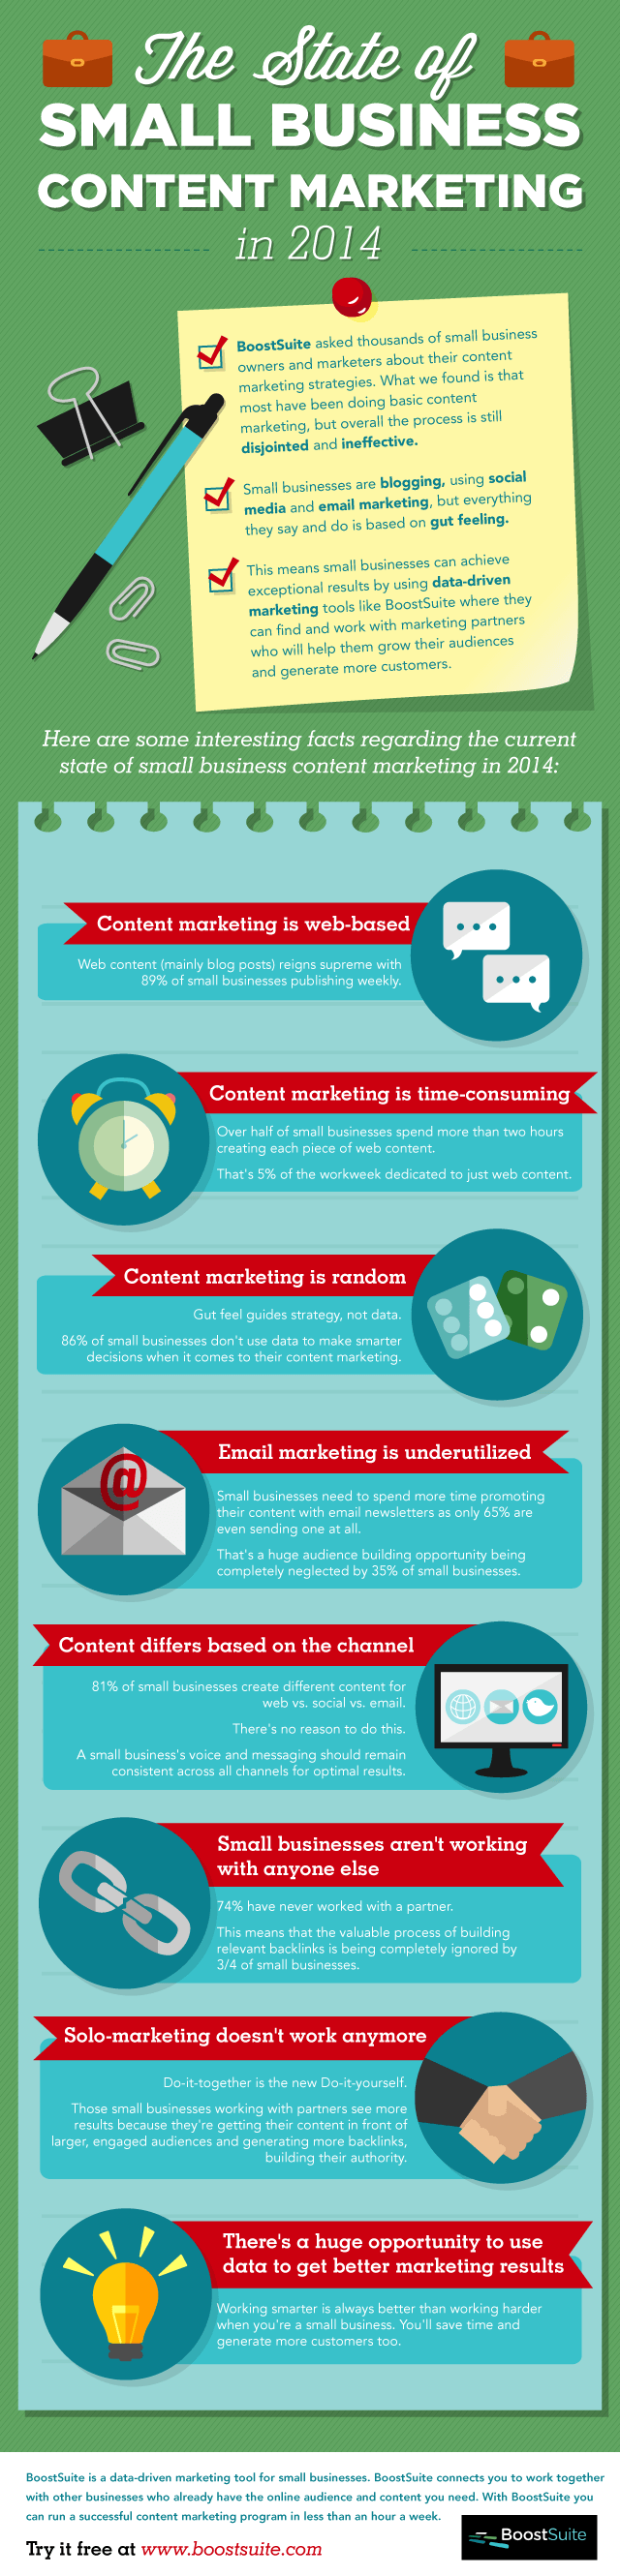 The State of Small Business Content Marketing in 2014 [Infographic] 1